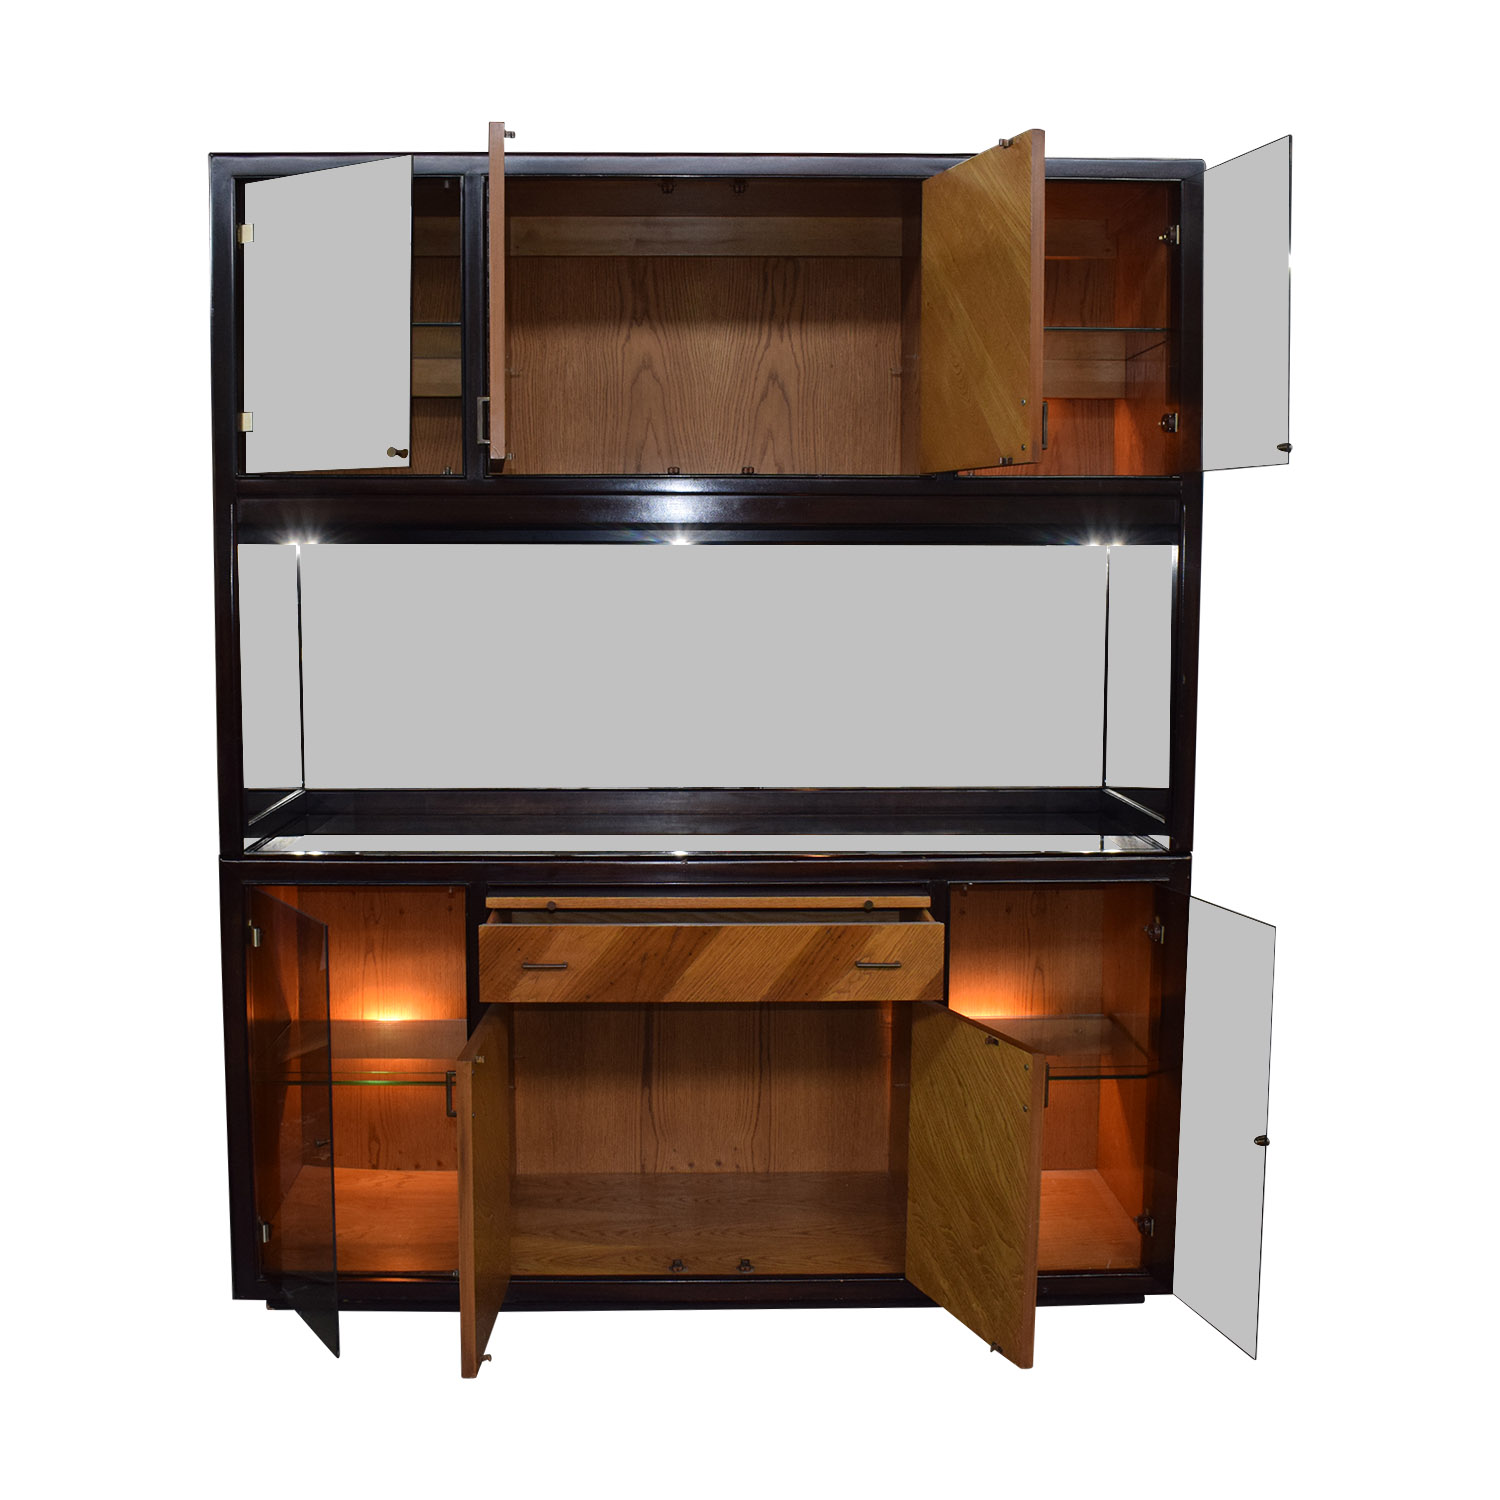 Peck and Hills Furniture Wood and Glass Mirrored Breakfront / Cabinets & Sideboards